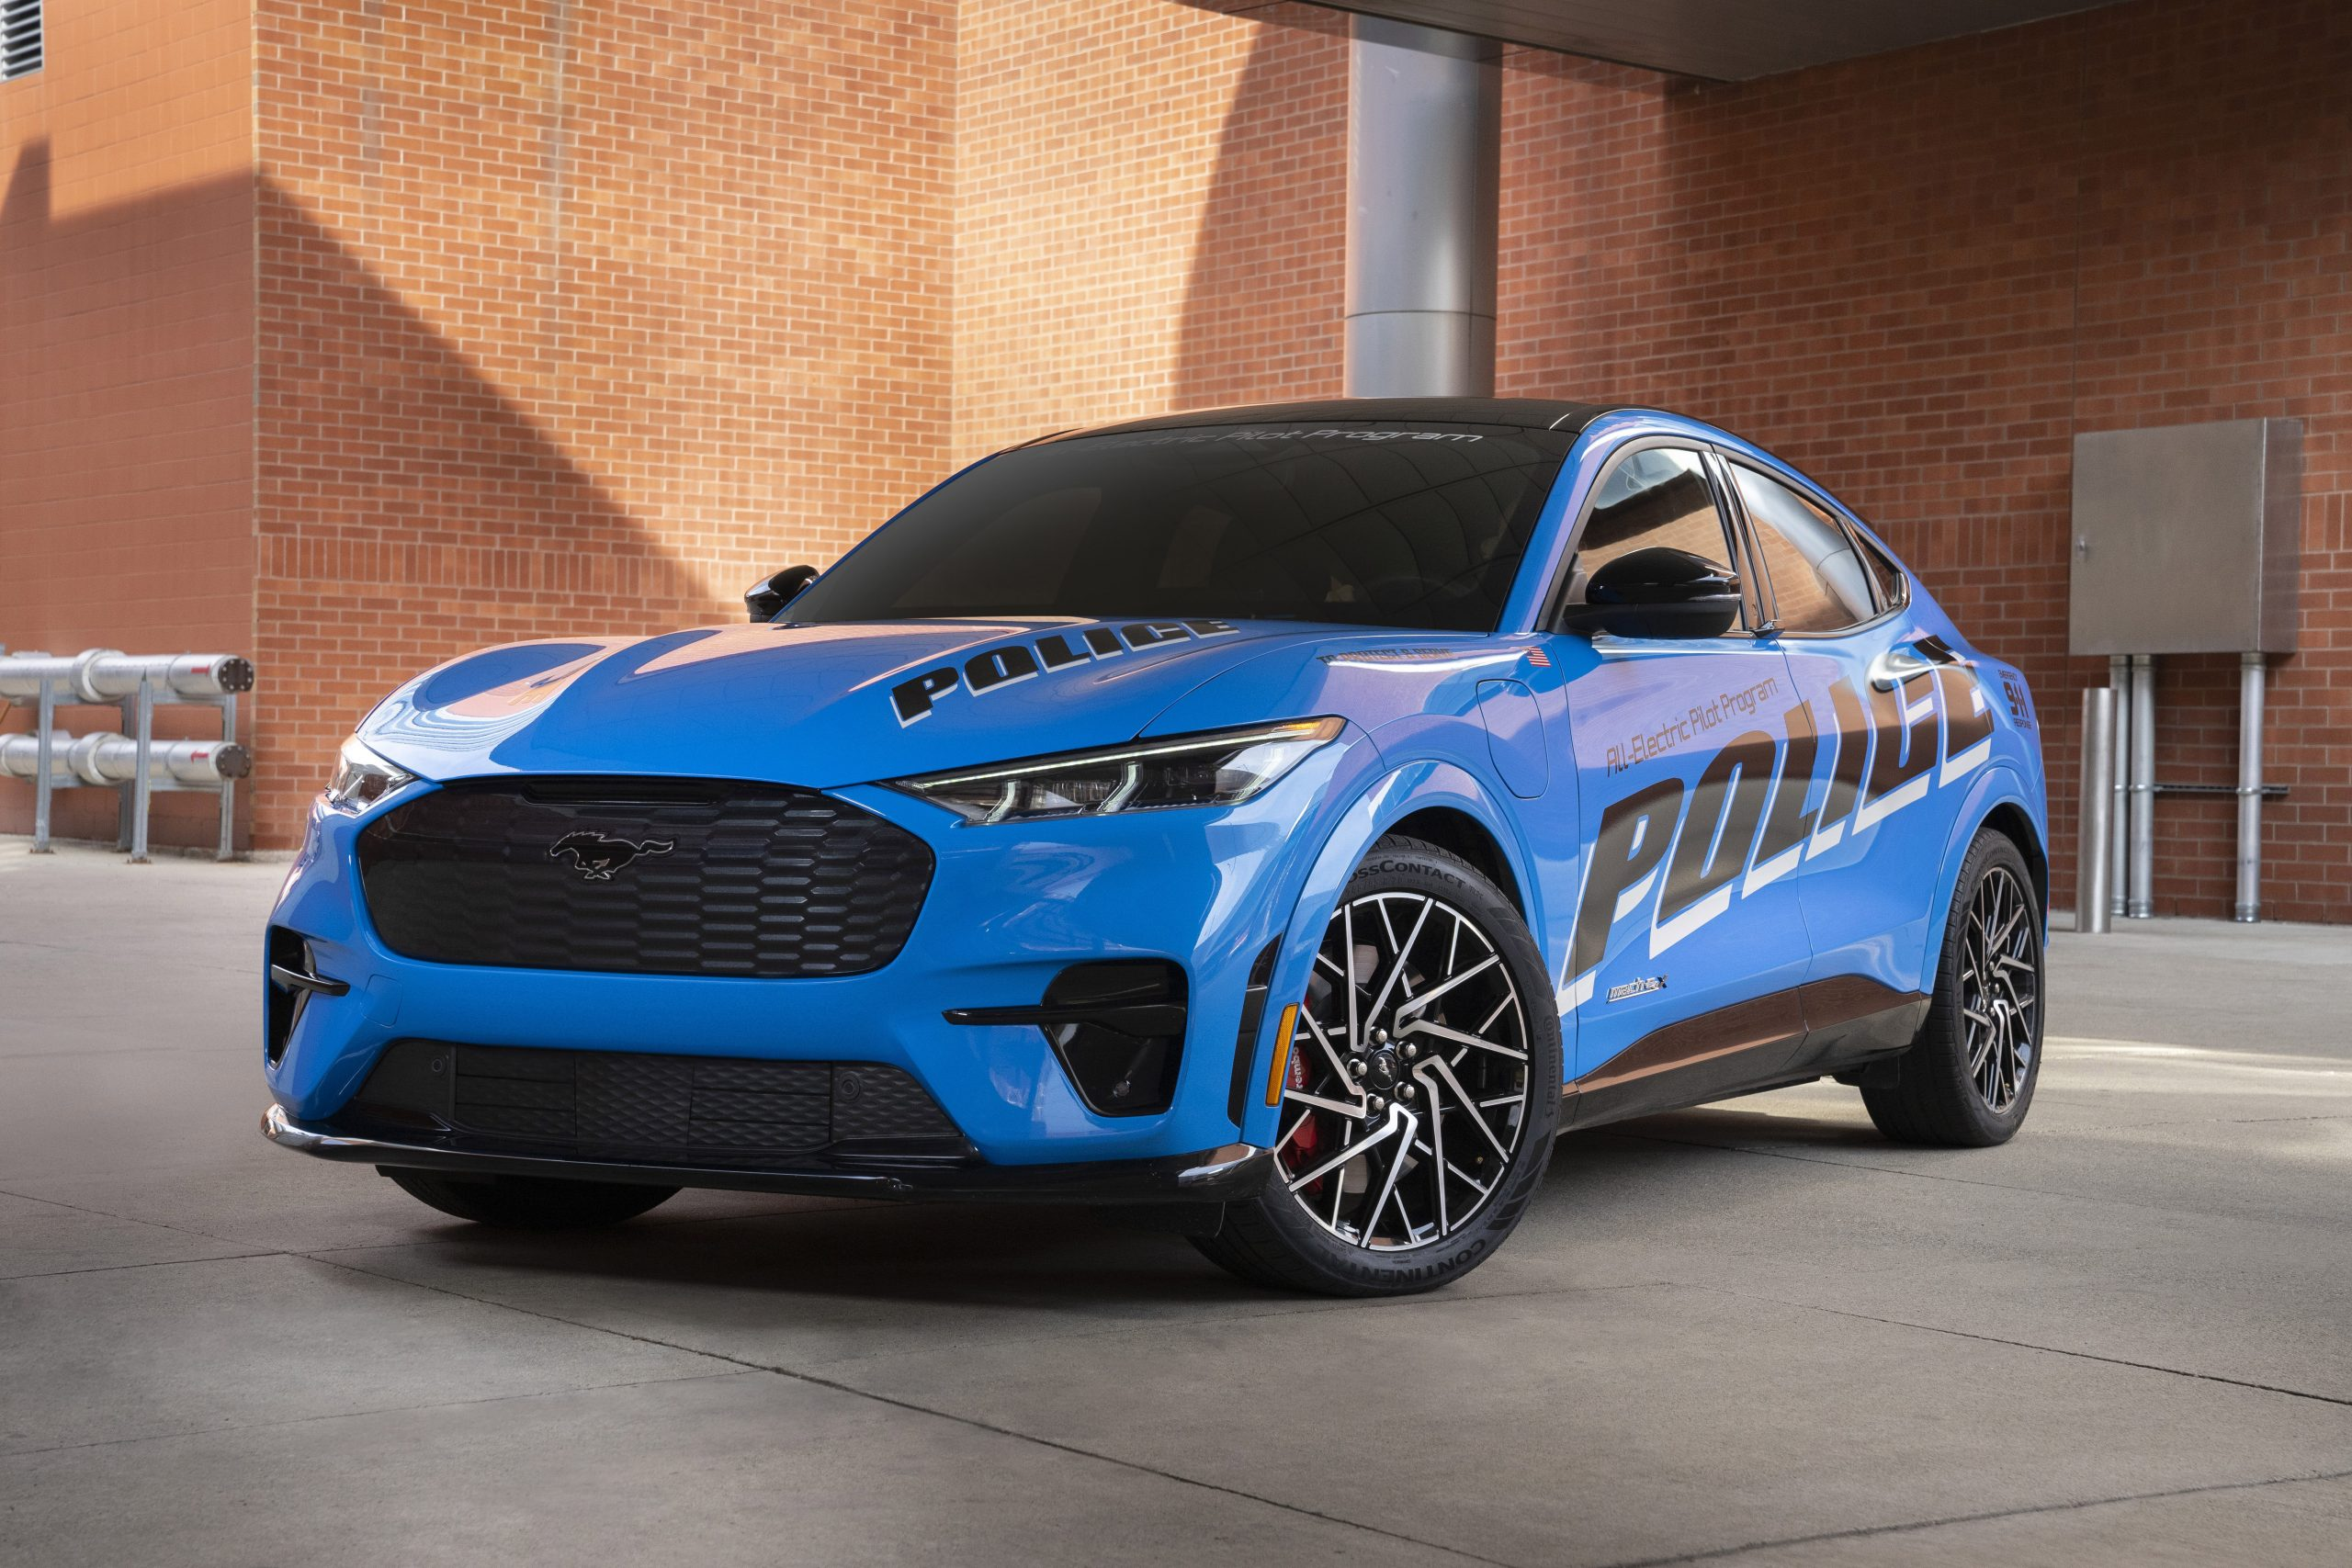 Ford Offers All-Electrical Police Automobile to Michigan State Police for Testing & Analysis